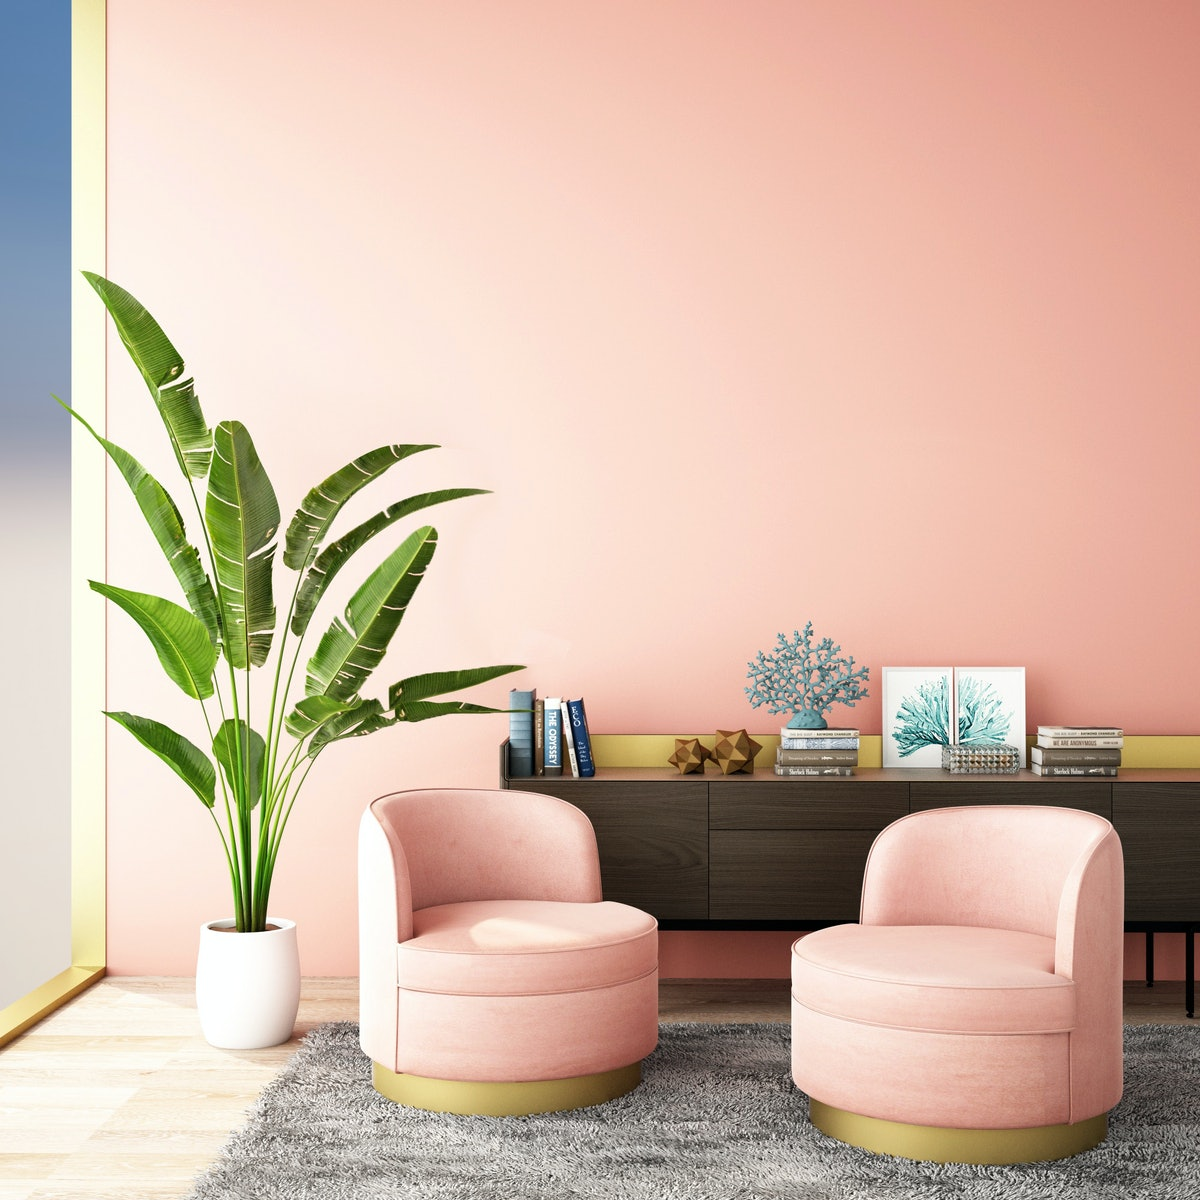 Soft pinks make for a soothing bedroom paint color.